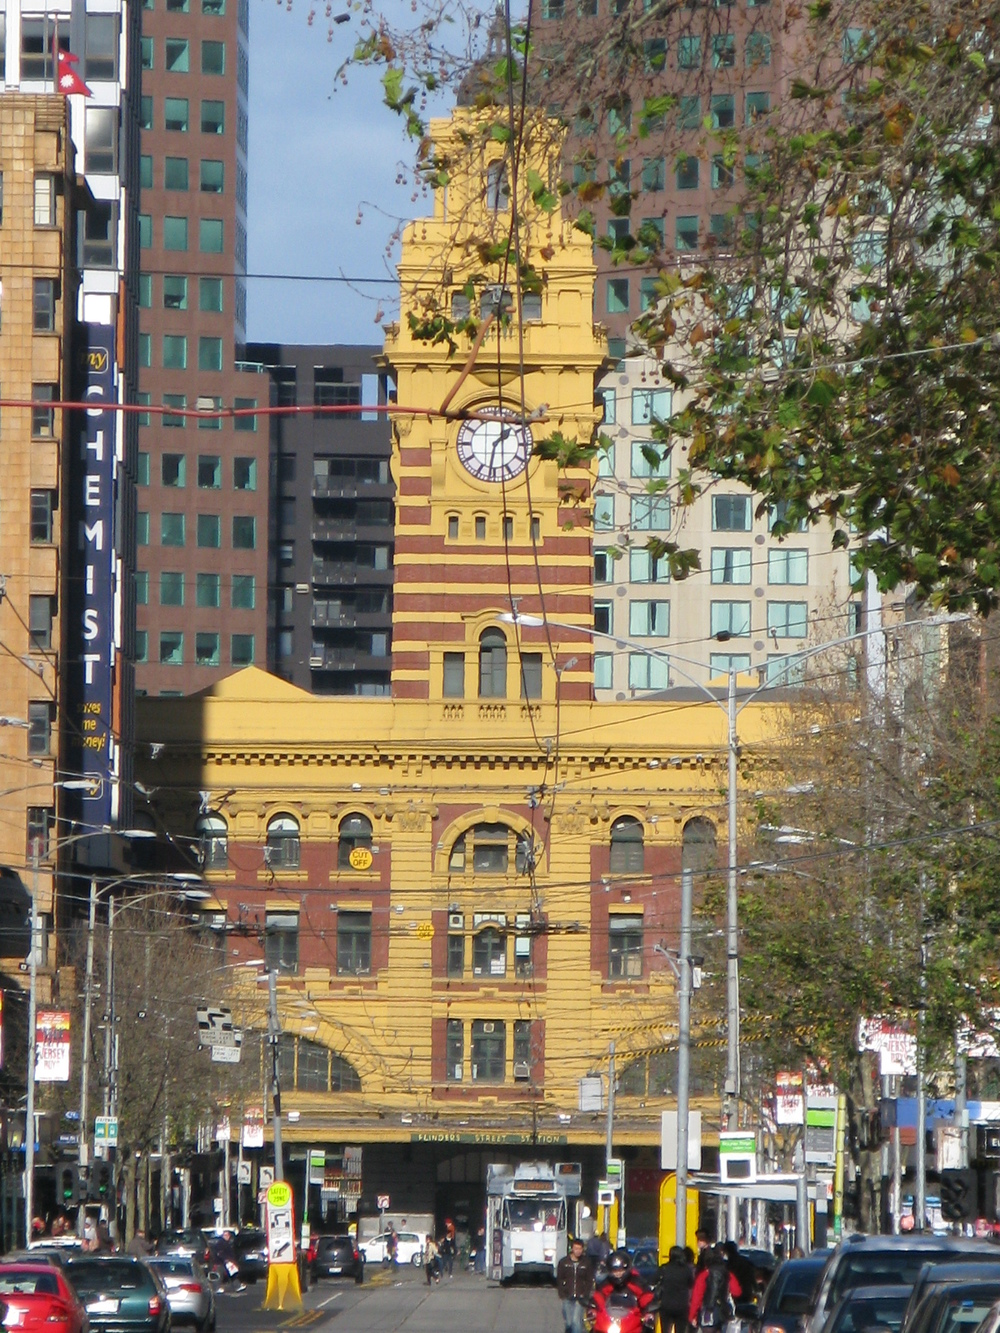 FlindersStStation.jpg